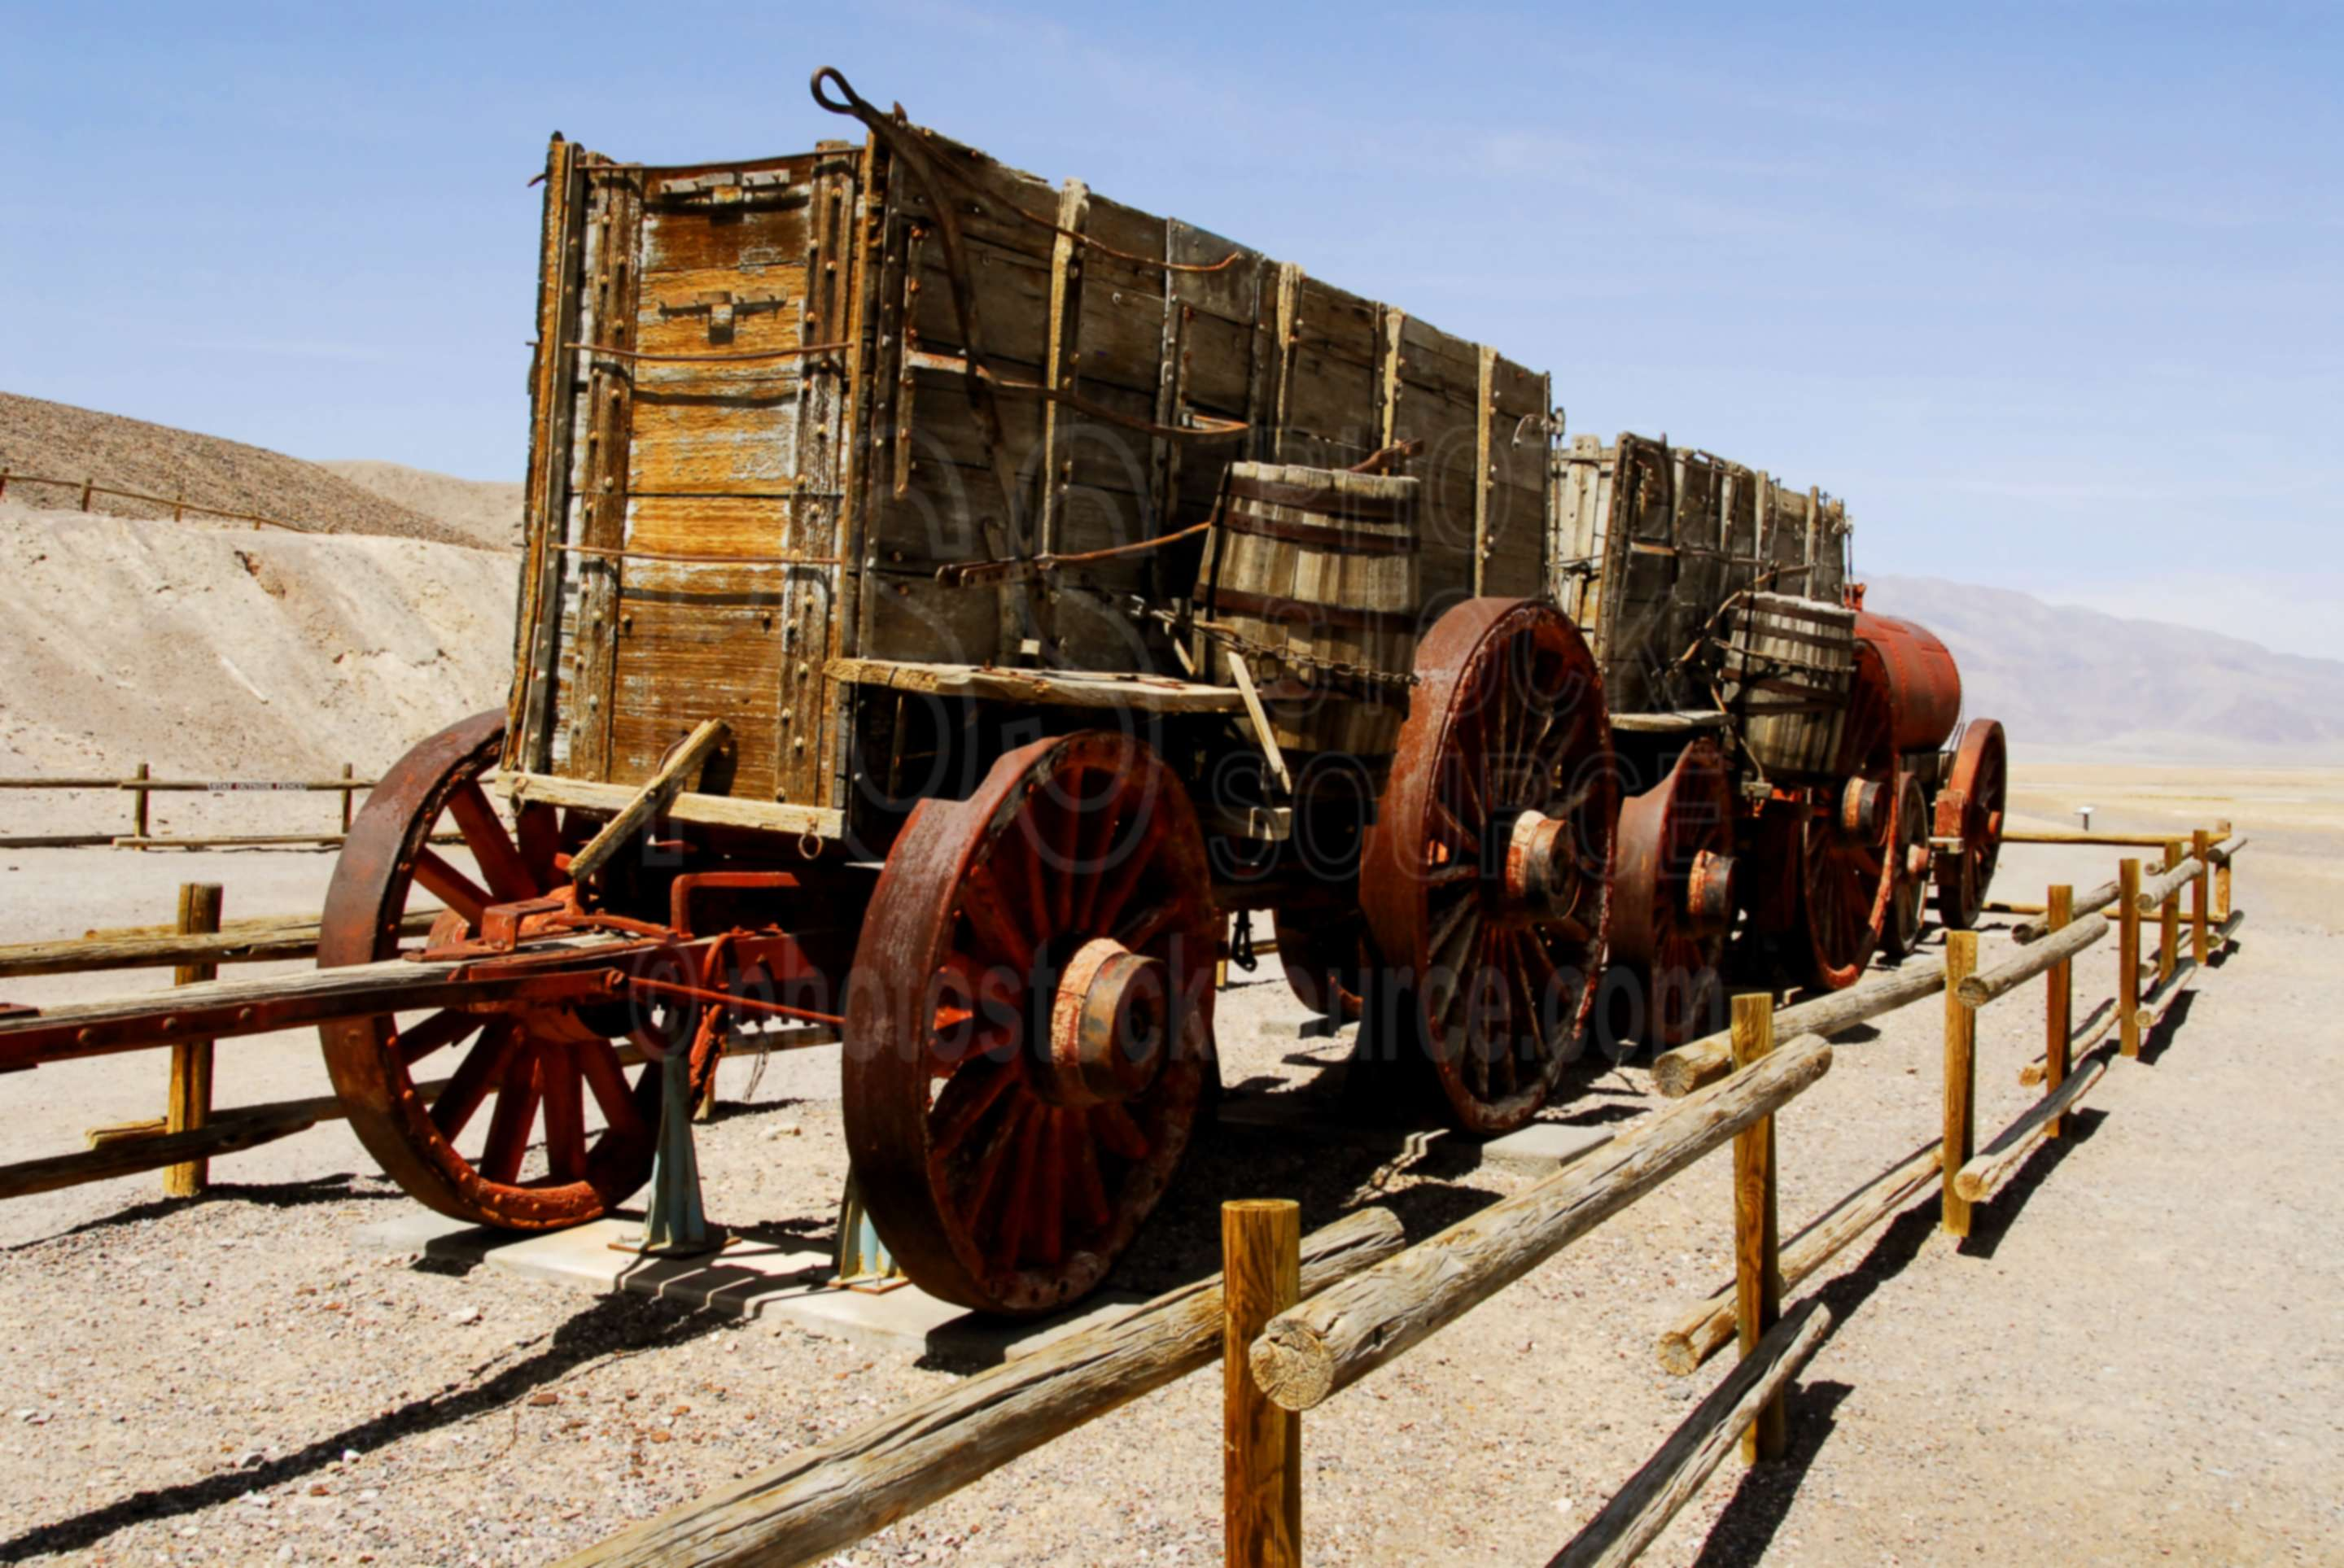 Harmony Borax Works Wagons,death valley,landform,valley,dry,borax,sodium borate,sodium tetraborate,disodium tetraborate,wagon,mineral,mine,mining,historic,historical